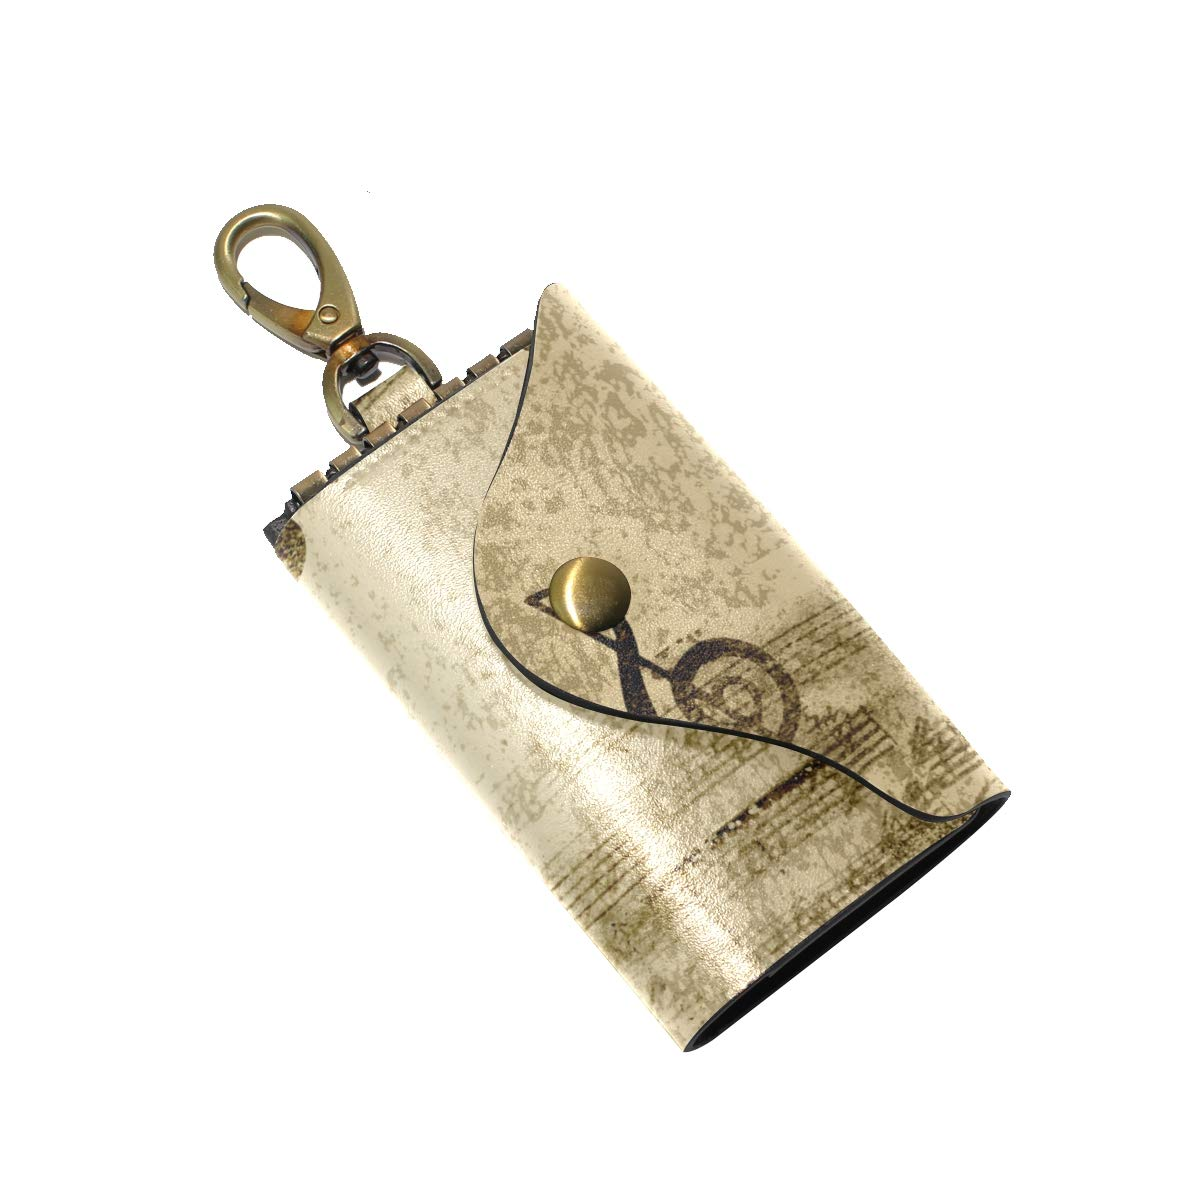 KEAKIA Music Notes Leather Key Case Wallets Tri-fold Key Holder Keychains with 6 Hooks 2 Slot Snap Closure for Men Women